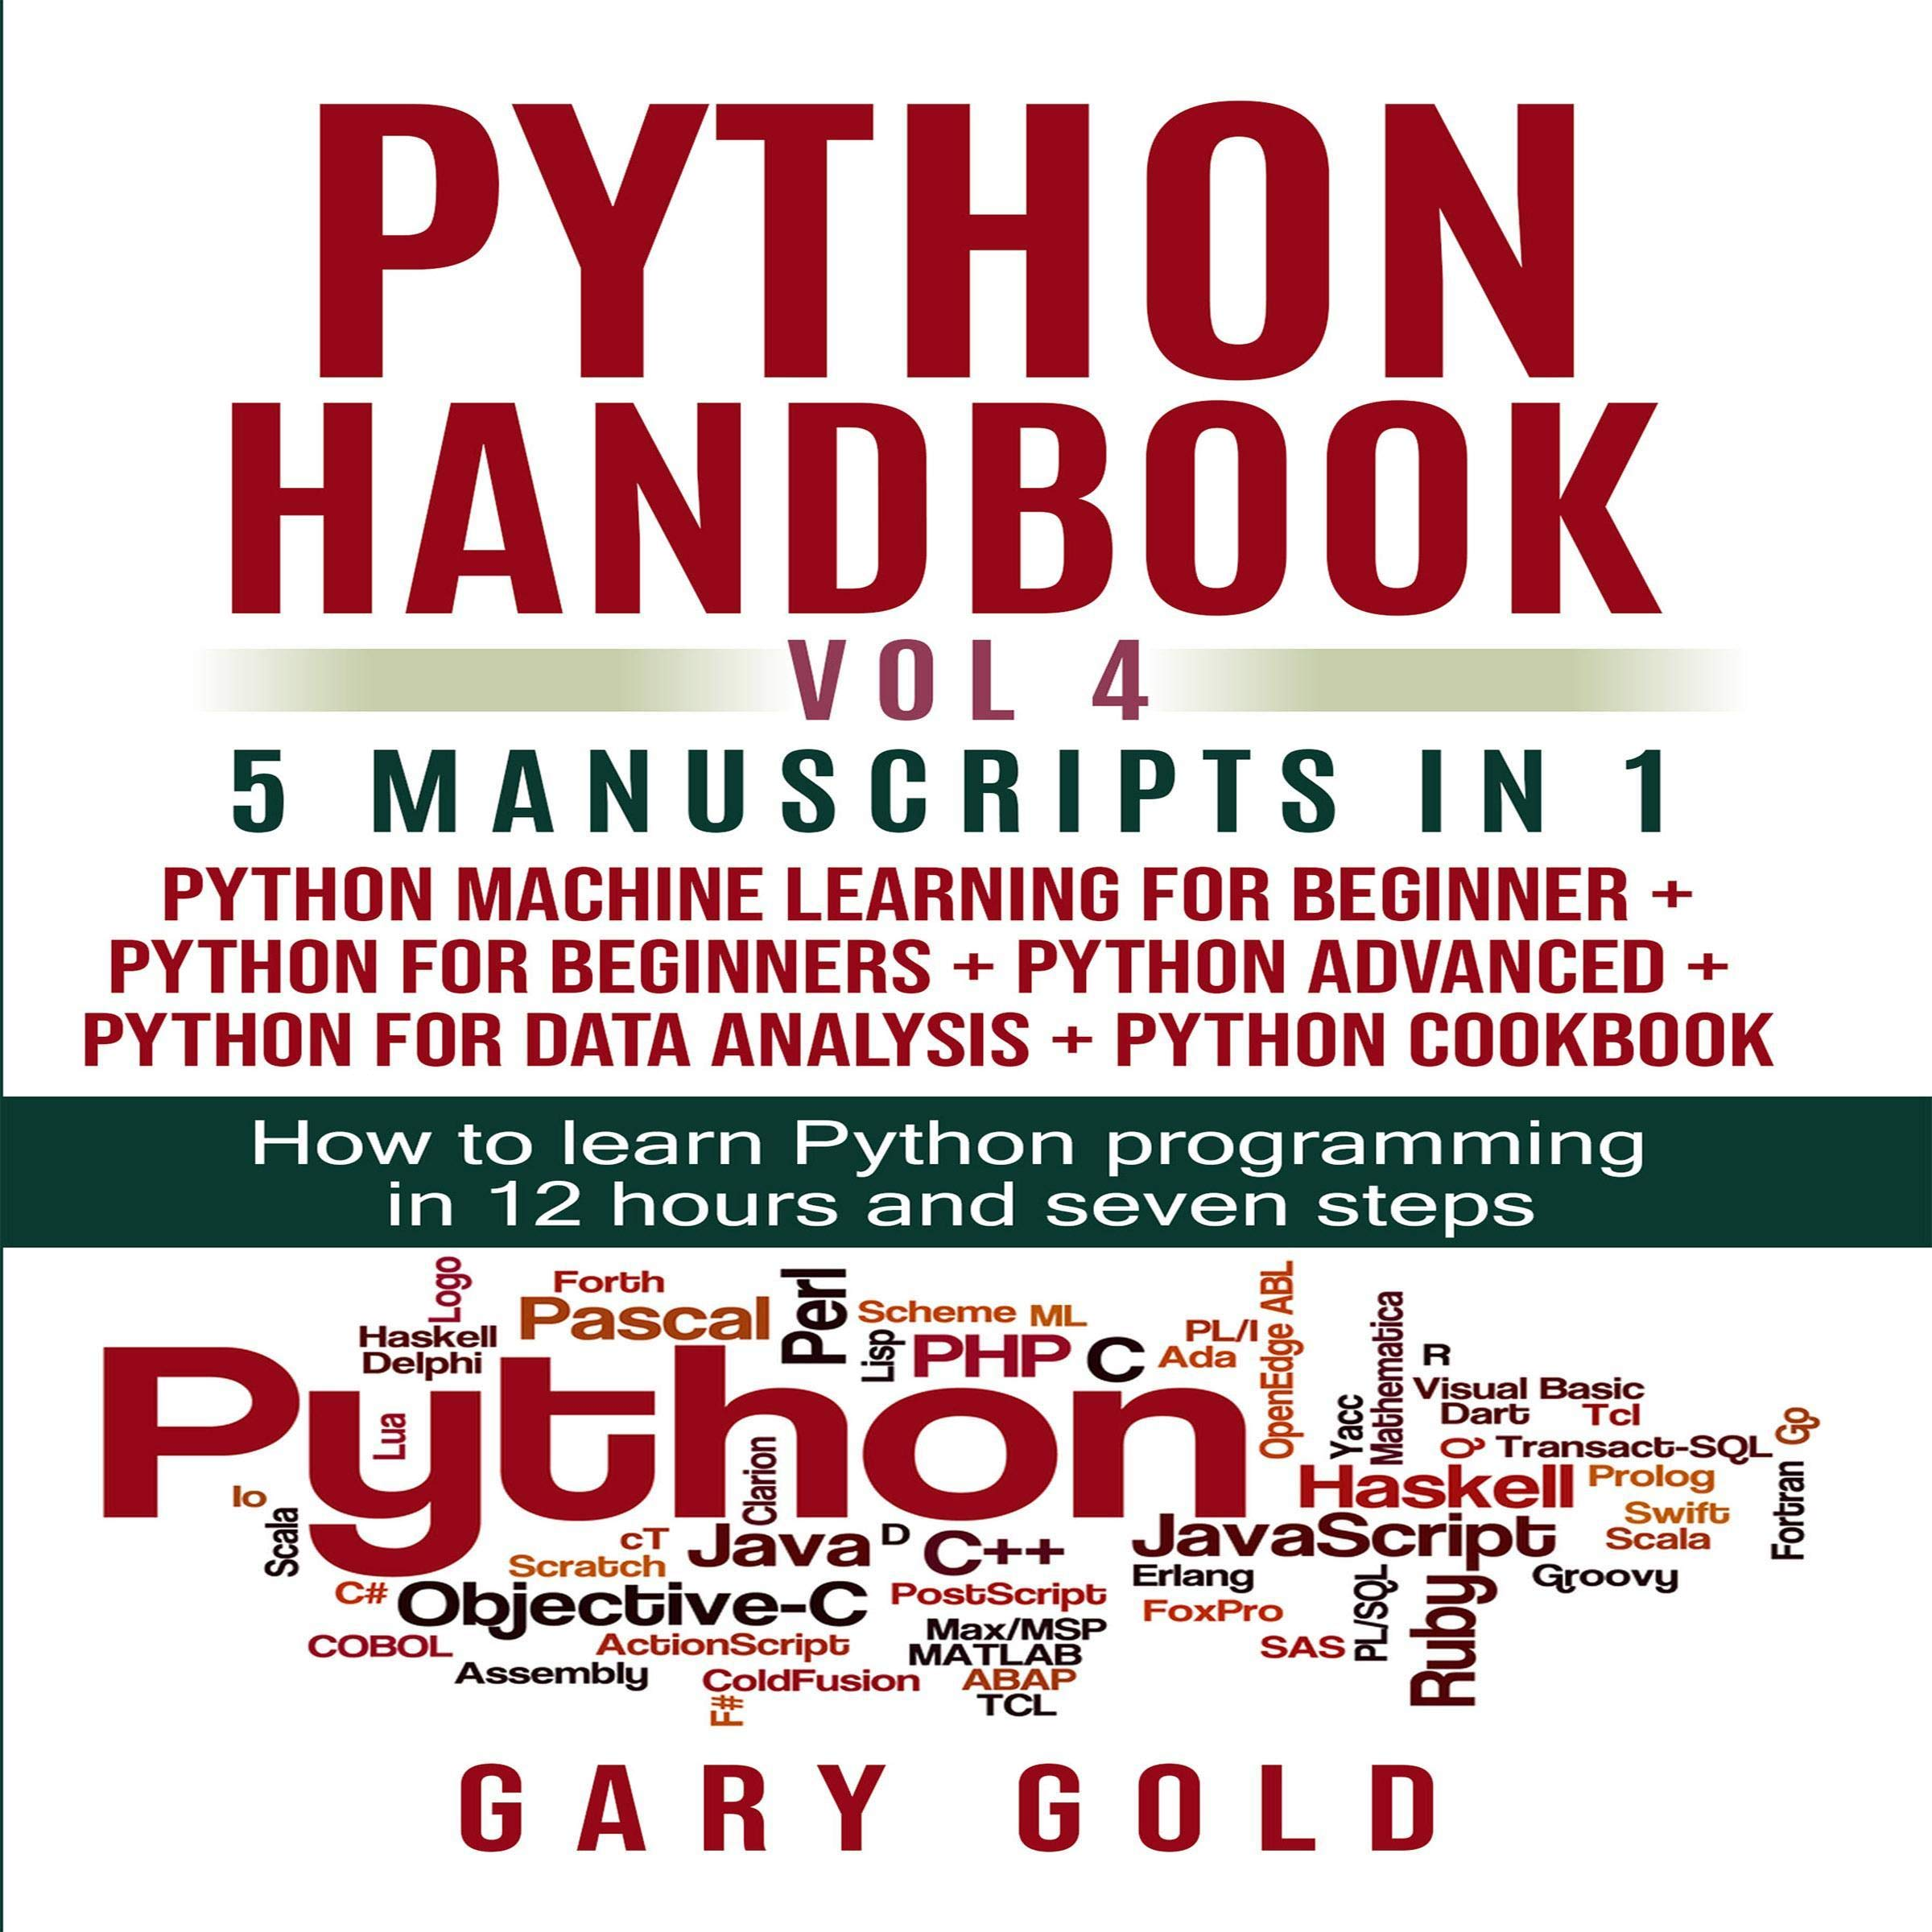 Python Handbook Vol 4, 5 Manuscripts in 1: How to Learn Python Programming in 12 Hours and Seven Steps